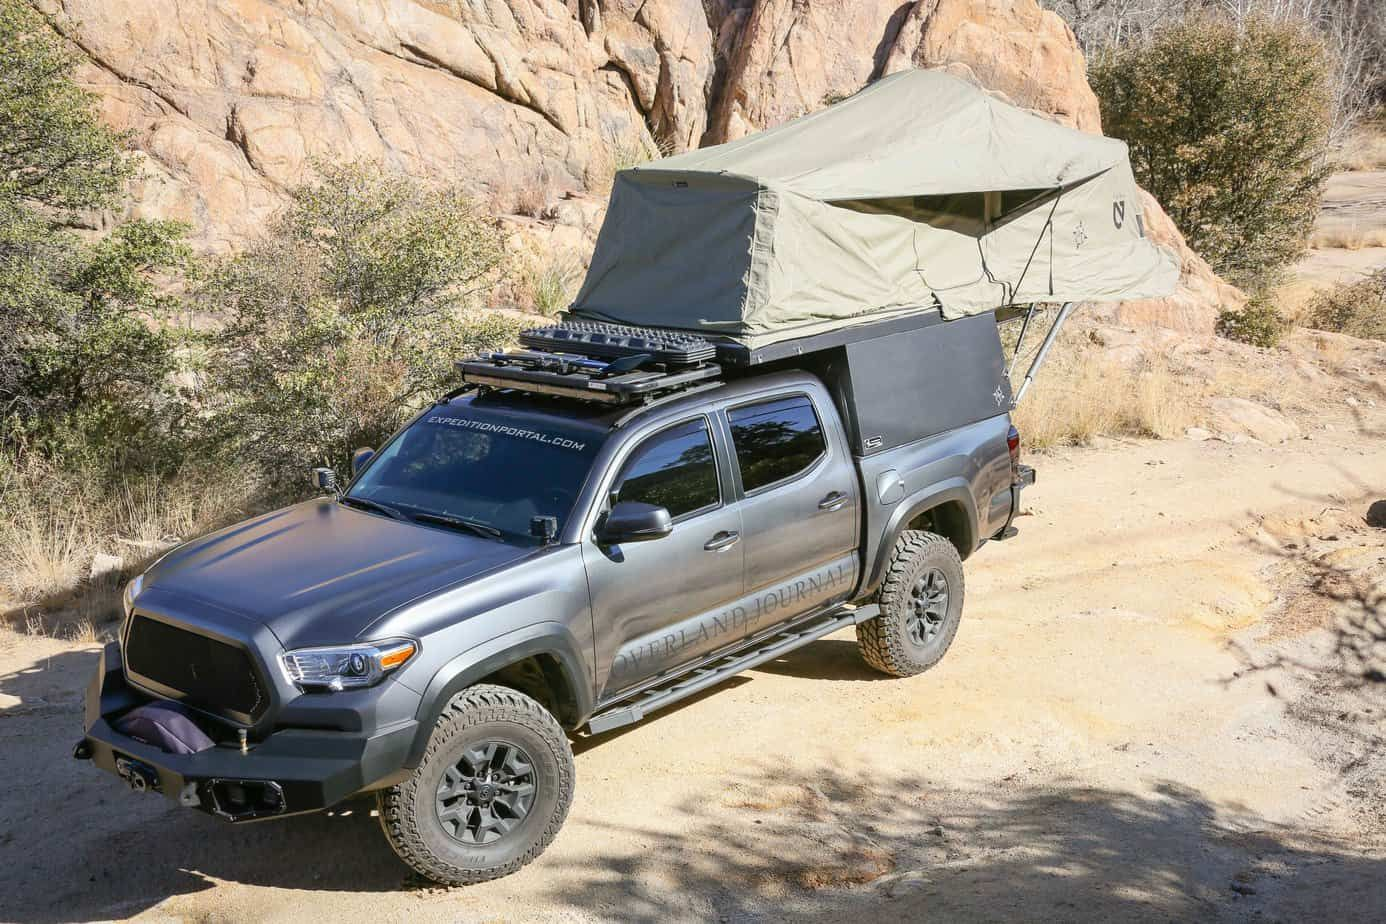 Featured in Overland Journal's Ultimate Build